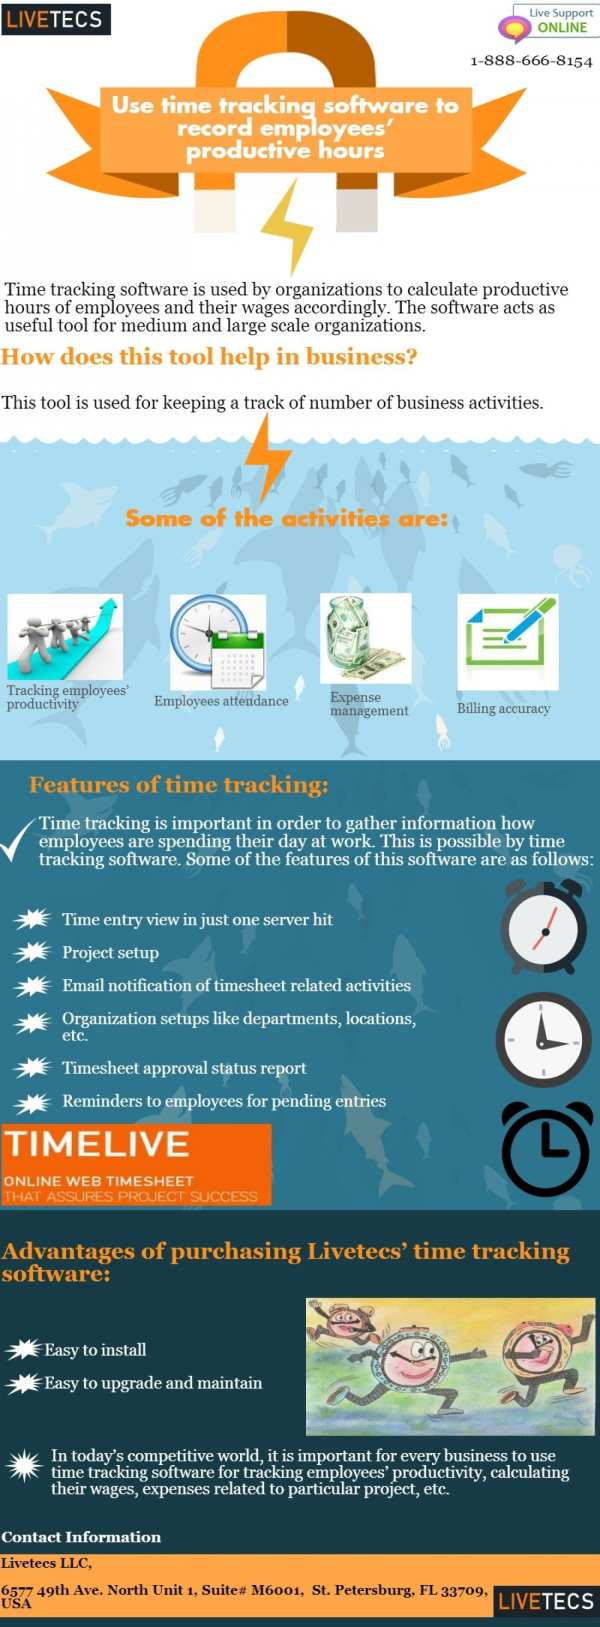 List of benefits to using time tracking software for employees